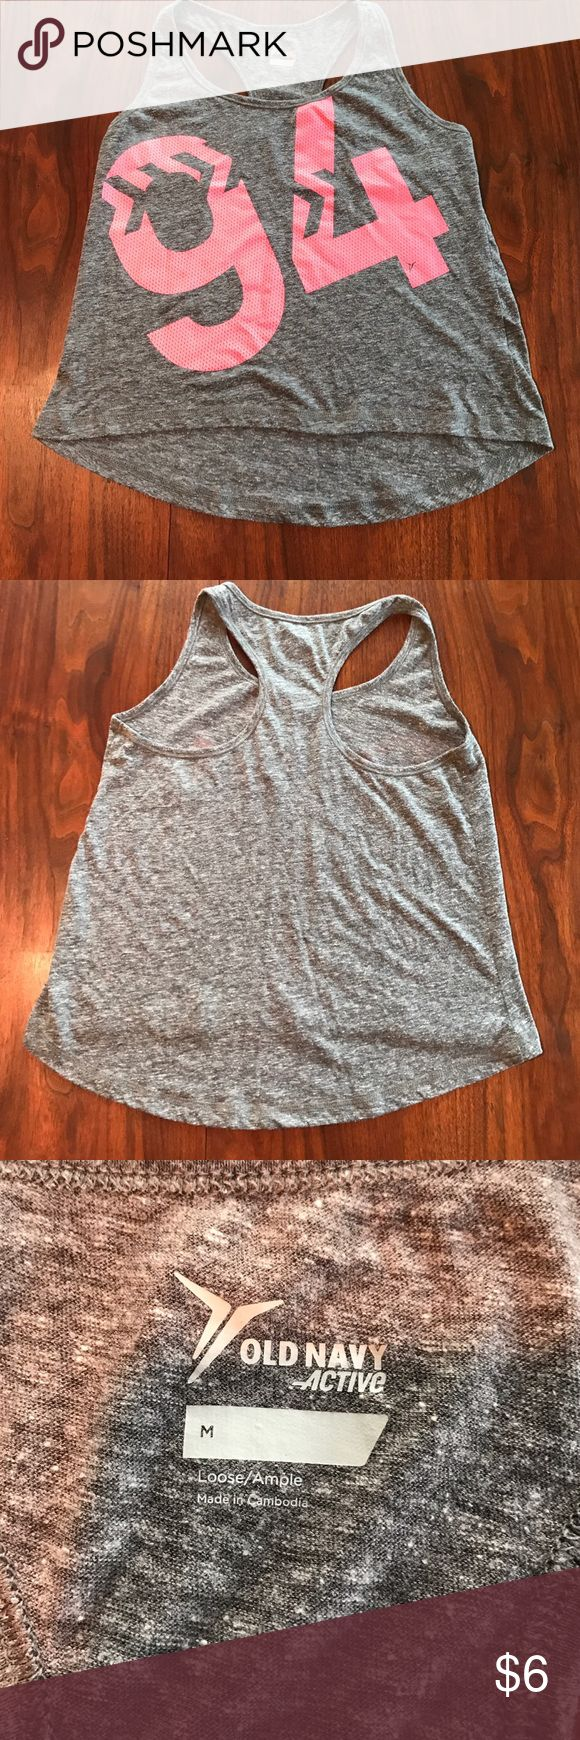 "Old Navy tank top Gray and pink Old Navy workout tank top. In great condition, no creasing on the ""94"" pink application. Rides a little longer in back. Old Navy Tops Tank Tops"